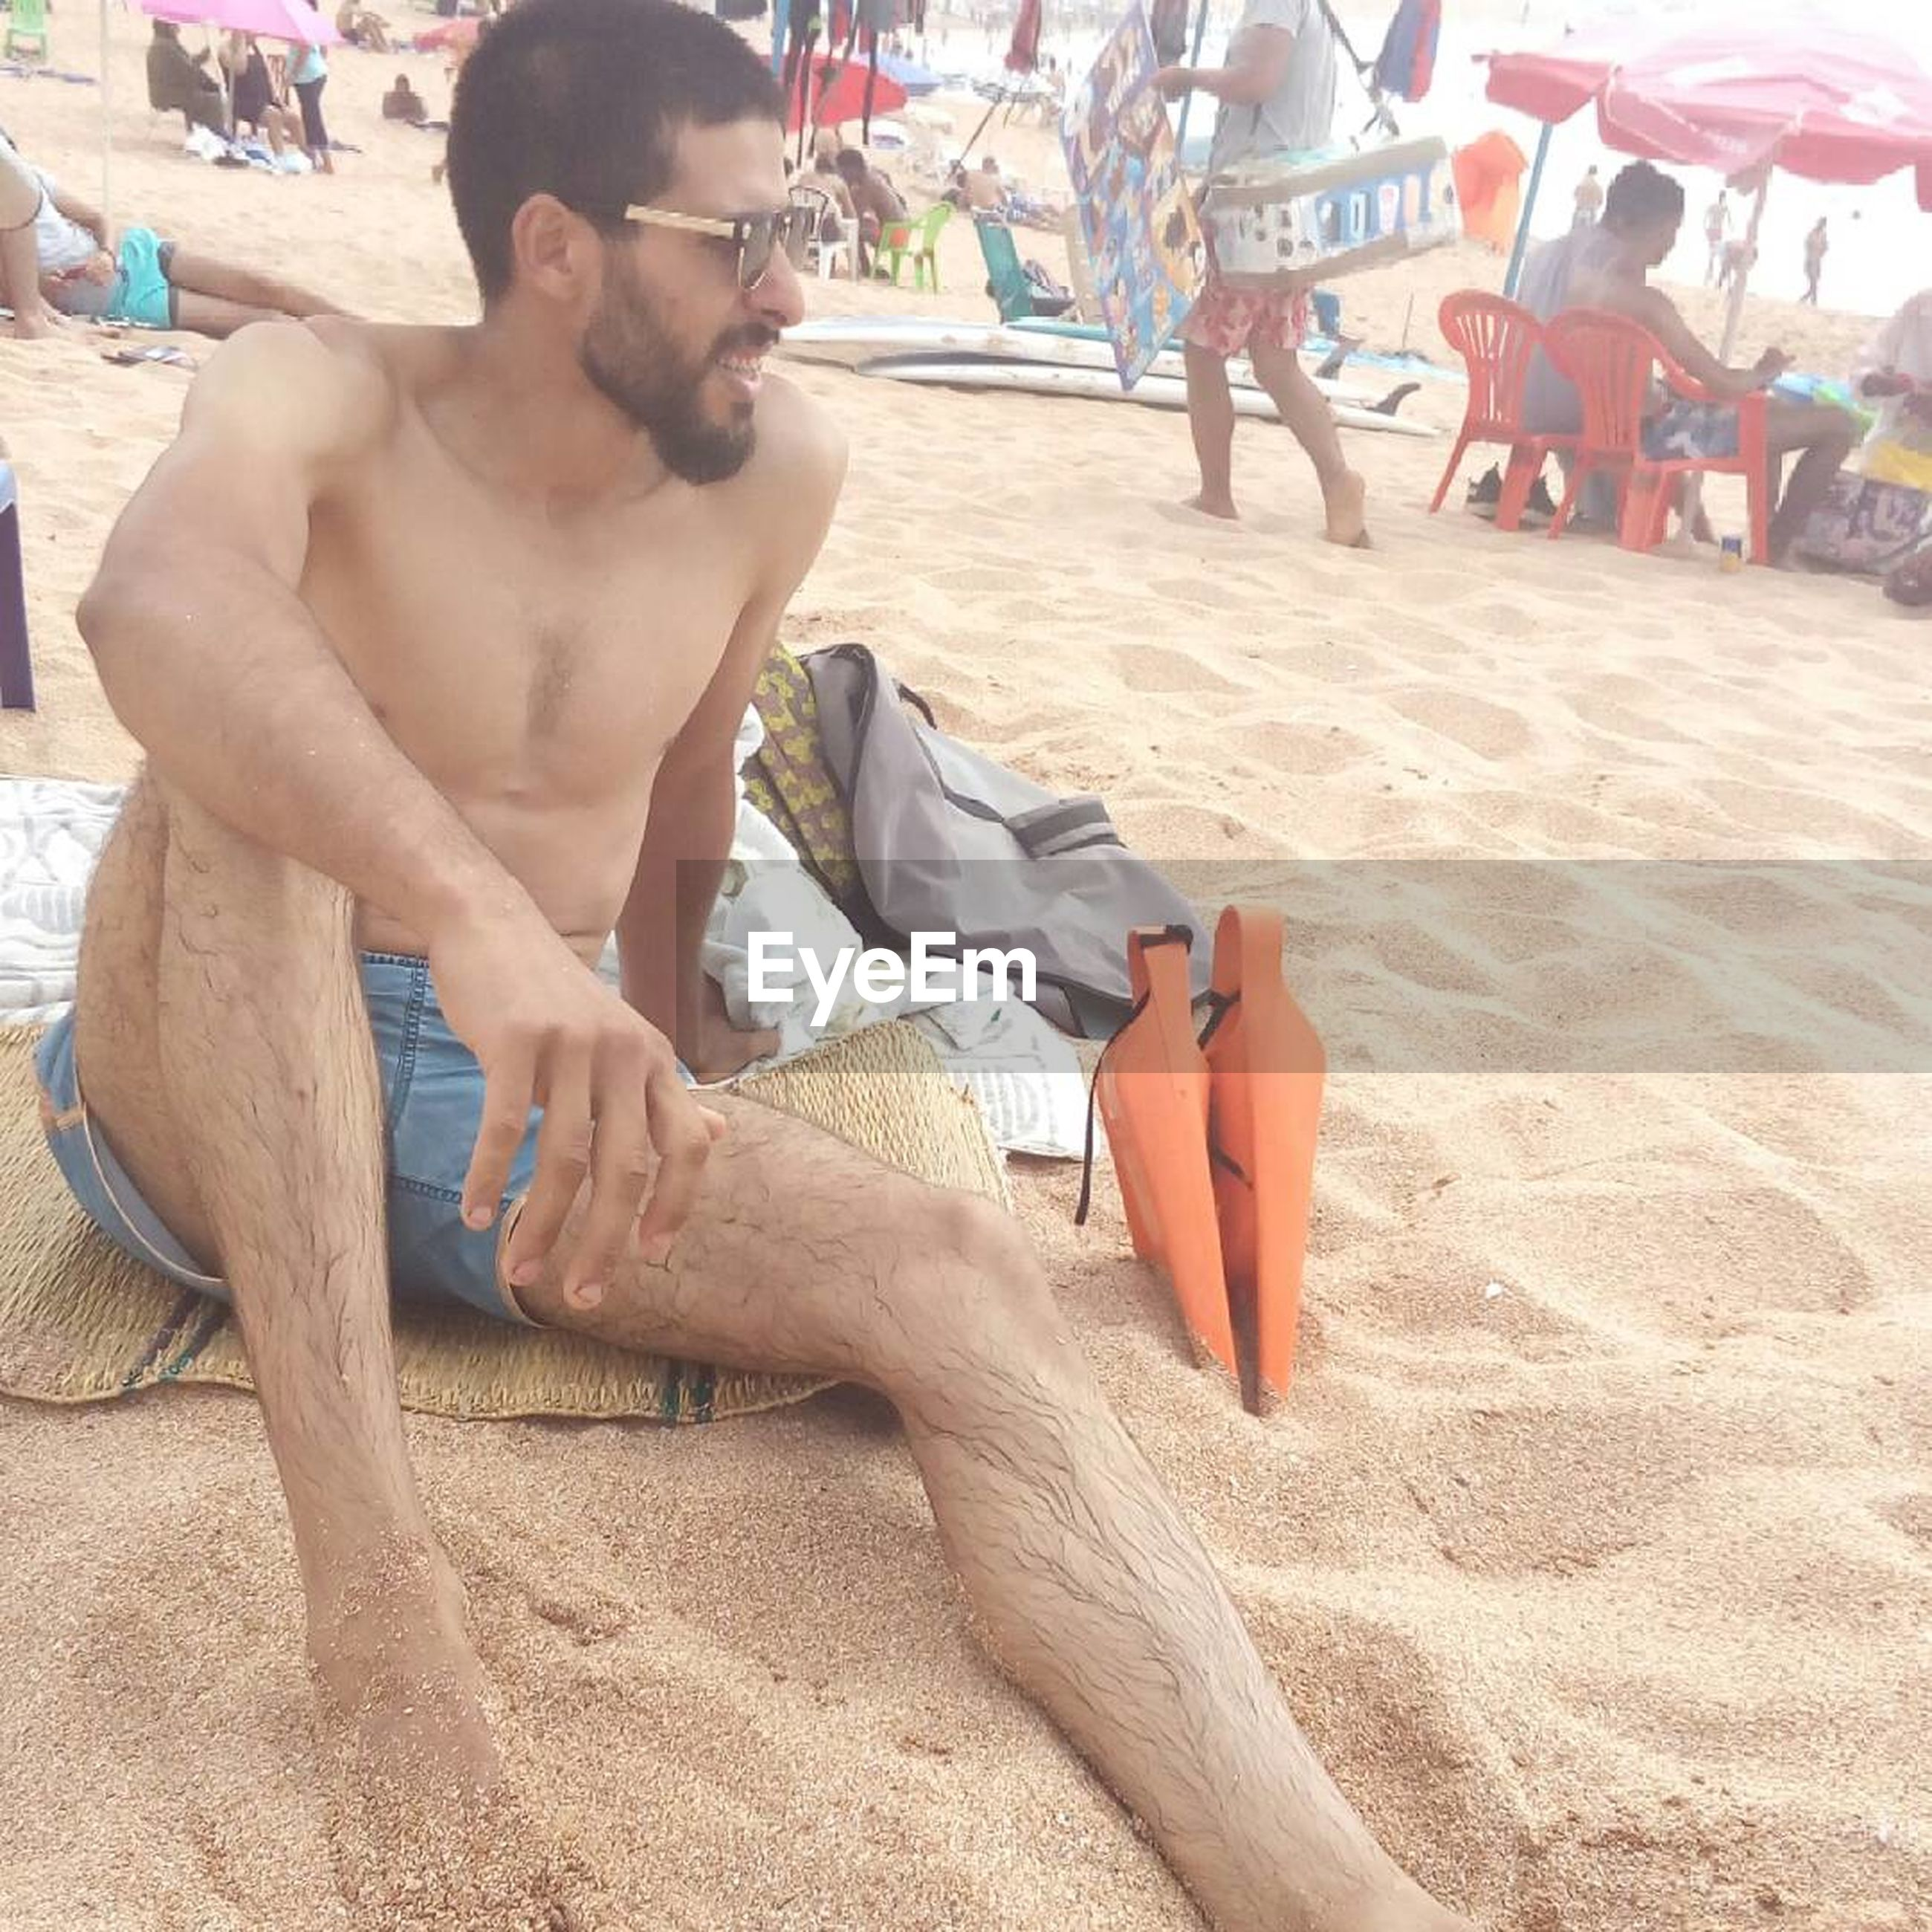 real people, sitting, sand, shirtless, outdoors, beach, leisure activity, day, one person, full length, lifestyles, vacations, young adult, people